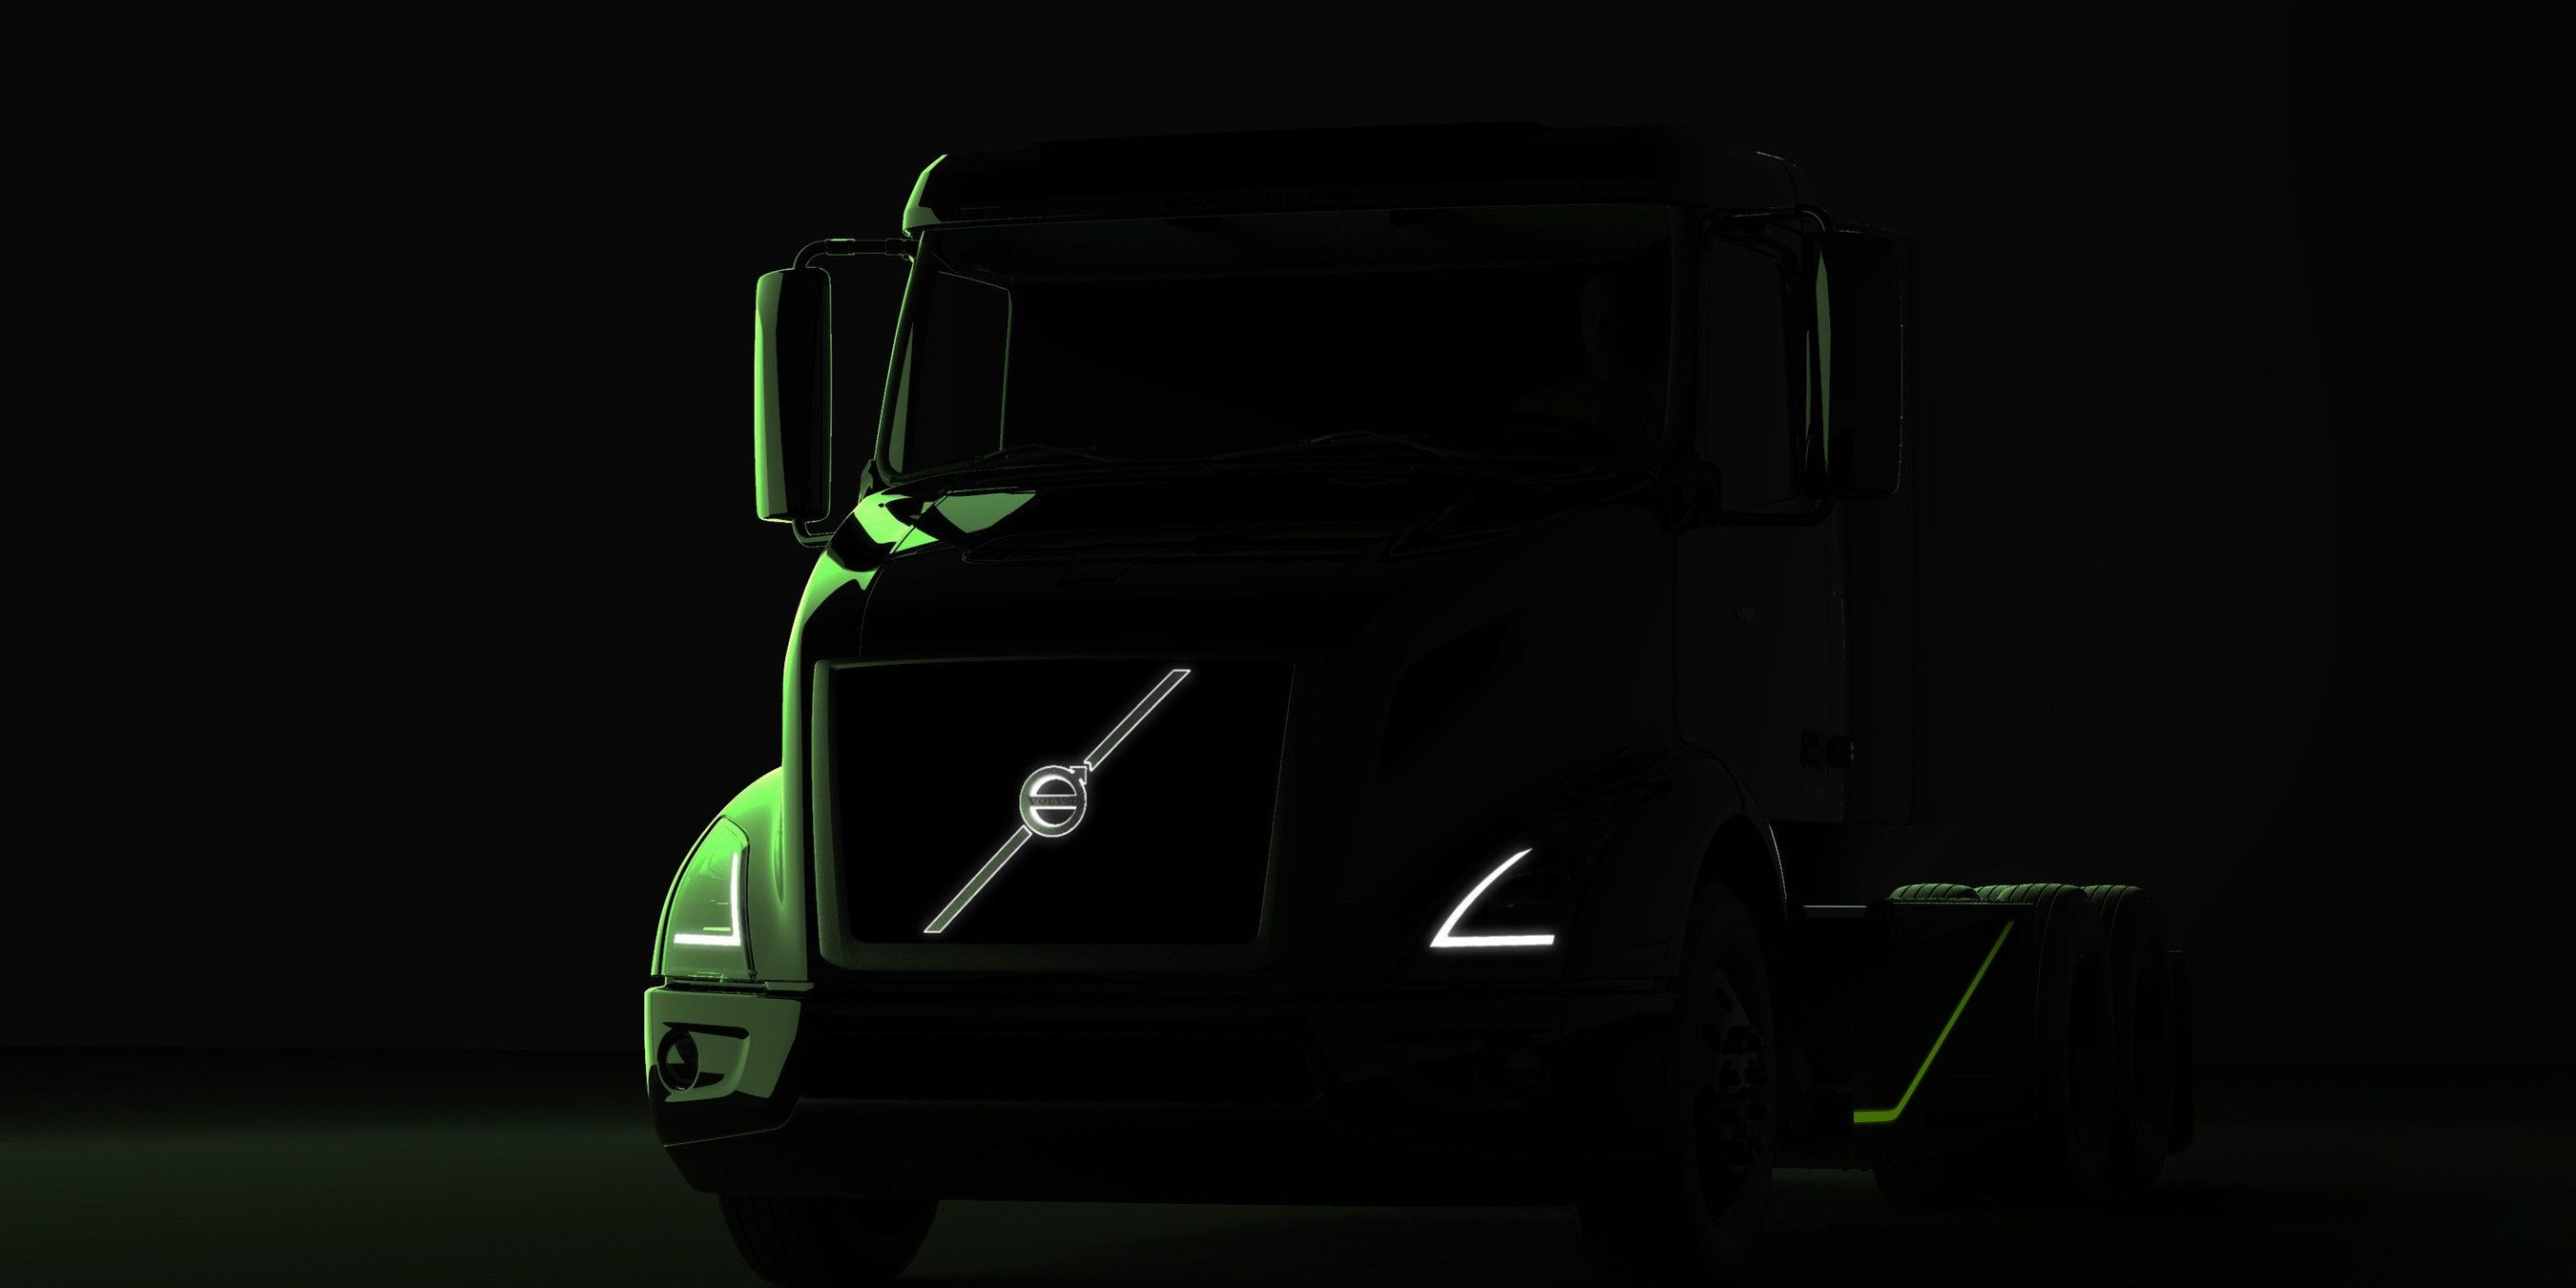 Volvo Trucks teases upcoming new all-electric semi truck